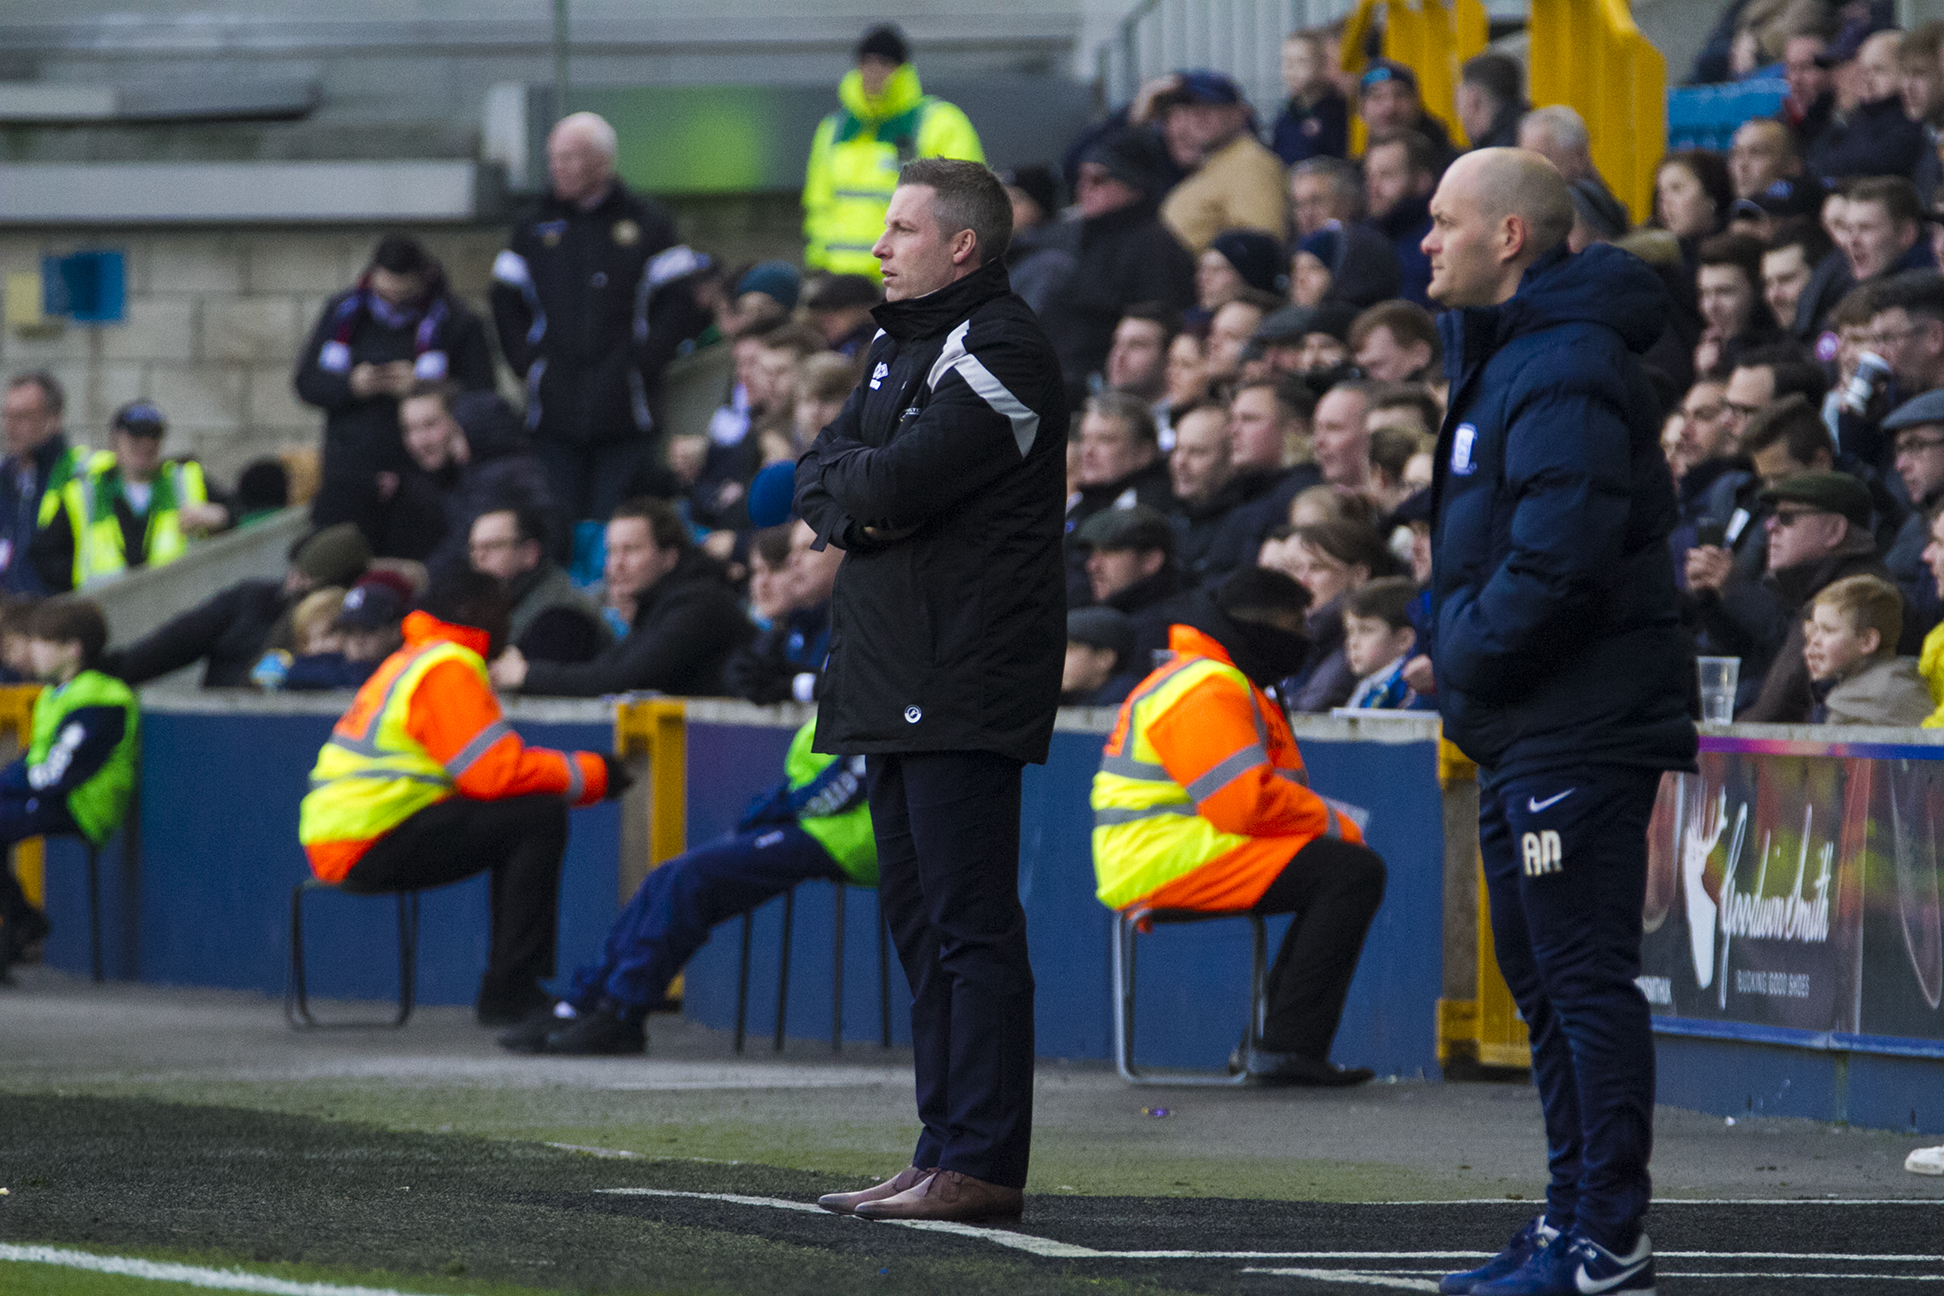 Millwall boss: Preston North End should have been down to 10 men